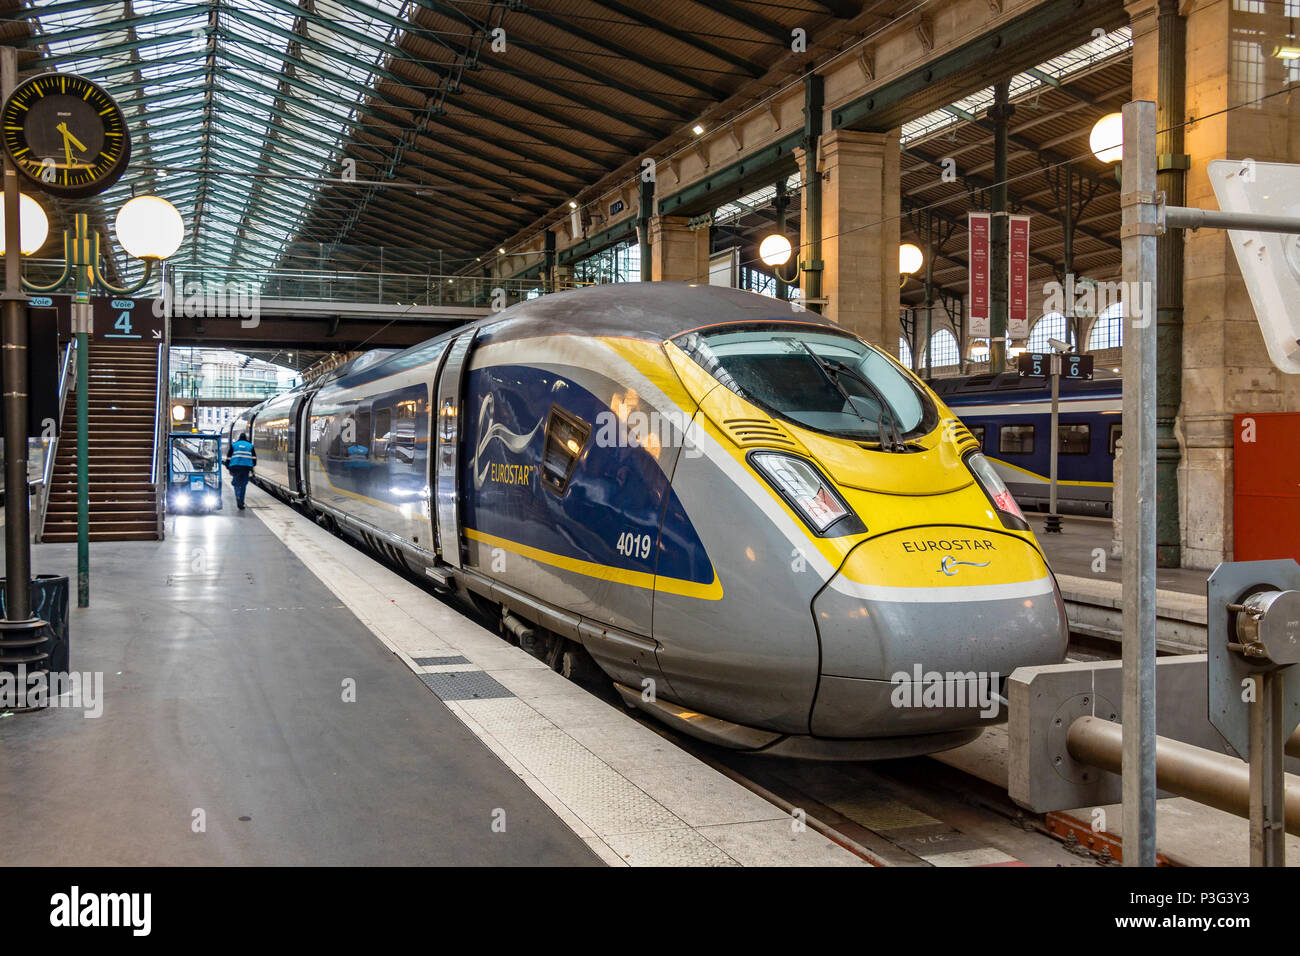 Eurostar Class 374 e320 electric multiple unit at Gare du Nord station in Paris,France - Stock Image